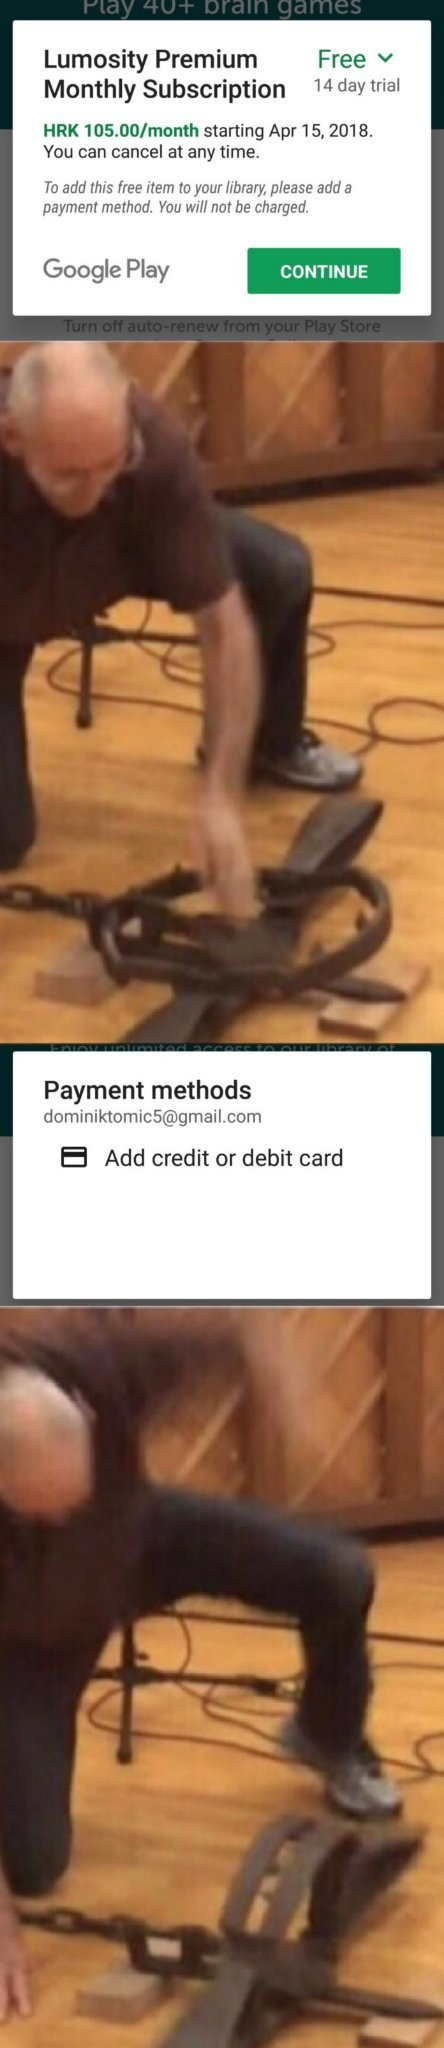 Why would you need a credit card for a free trial? - meme